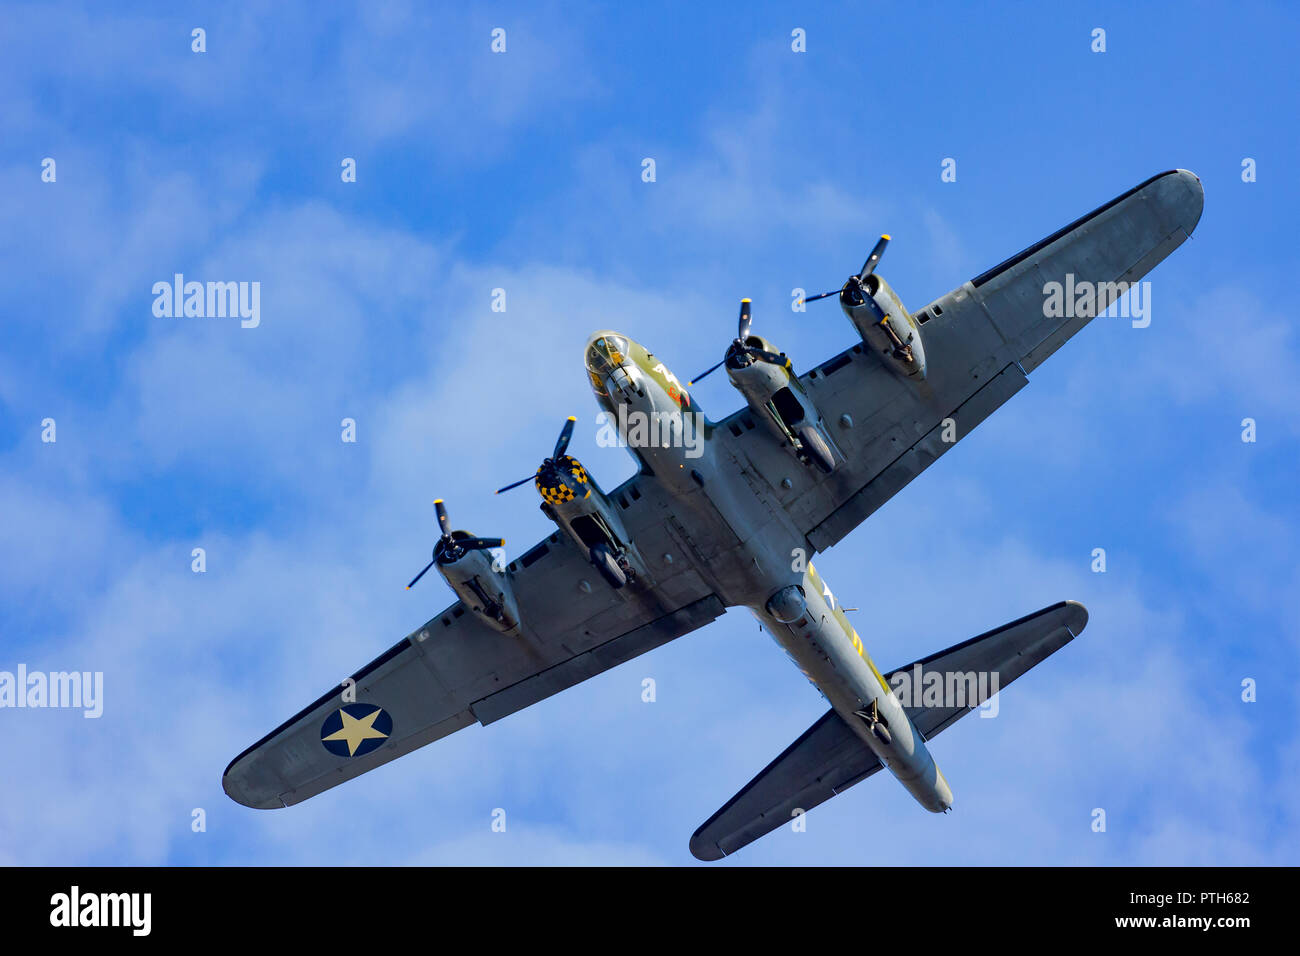 Sally B, B-17 Flying Fortress plane flying back from a display at the Bournemouth Air Festival 2018 - Stock Image